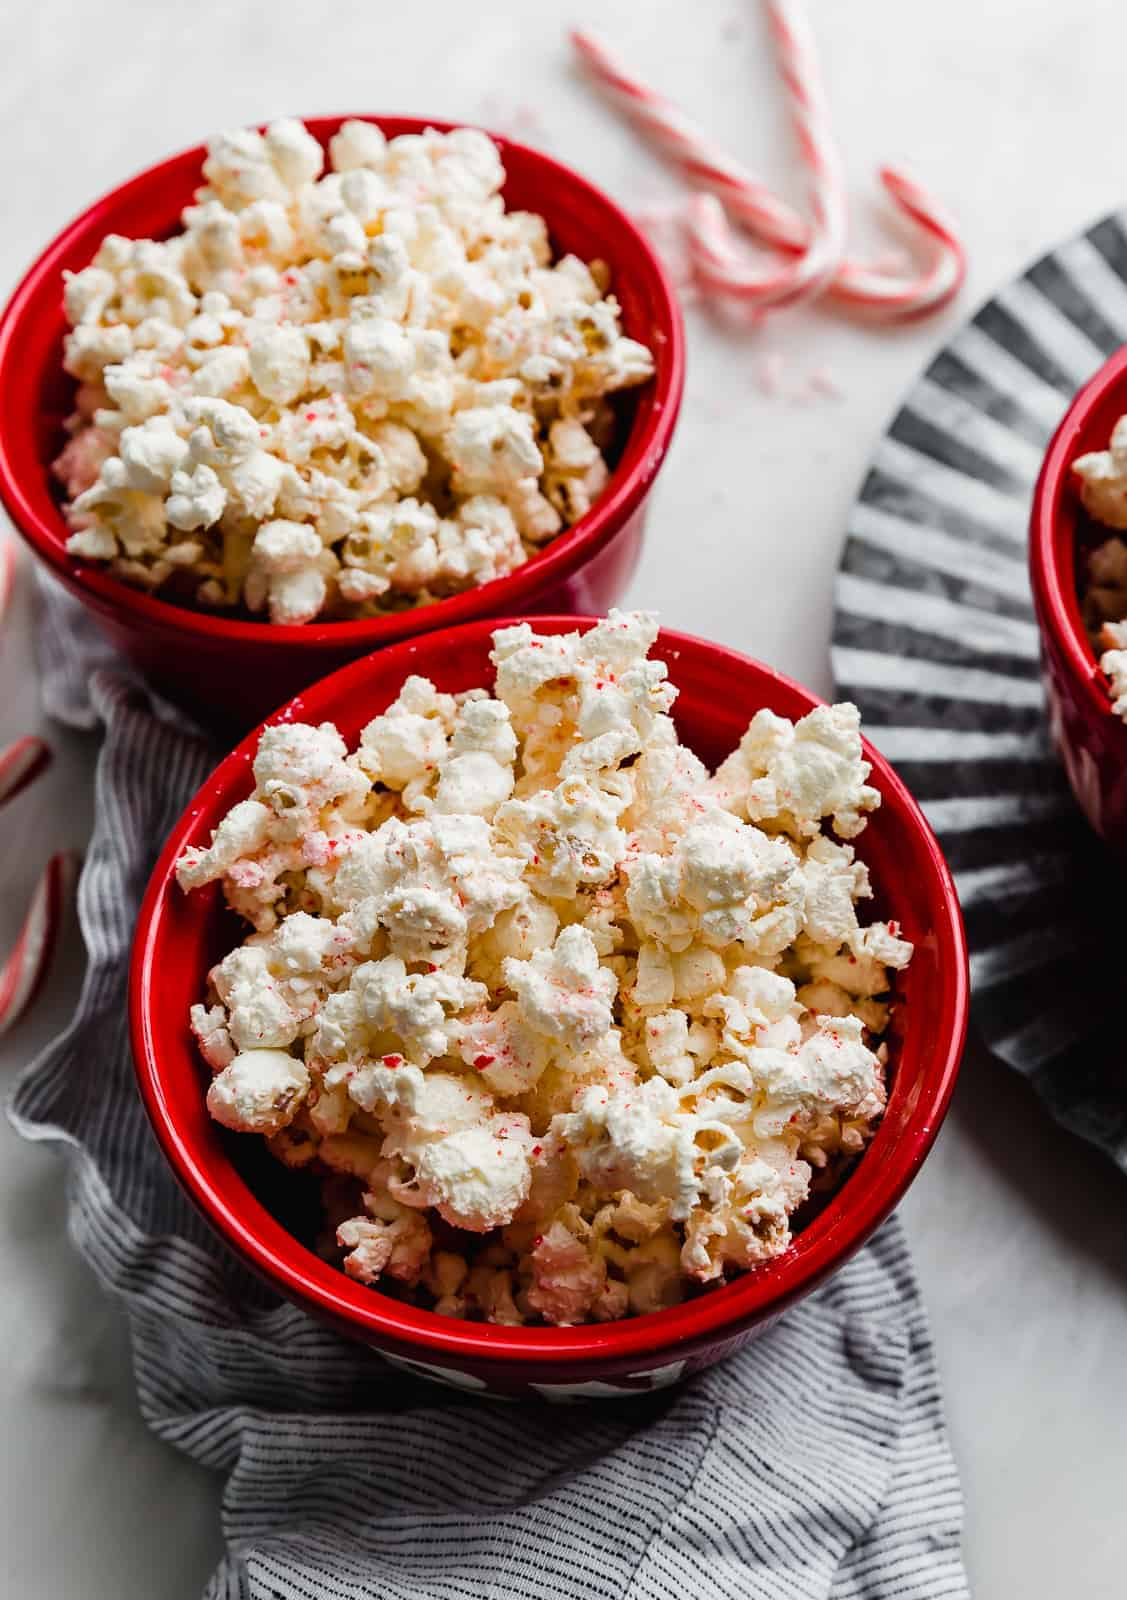 Two red bowls full of popped popcorn.